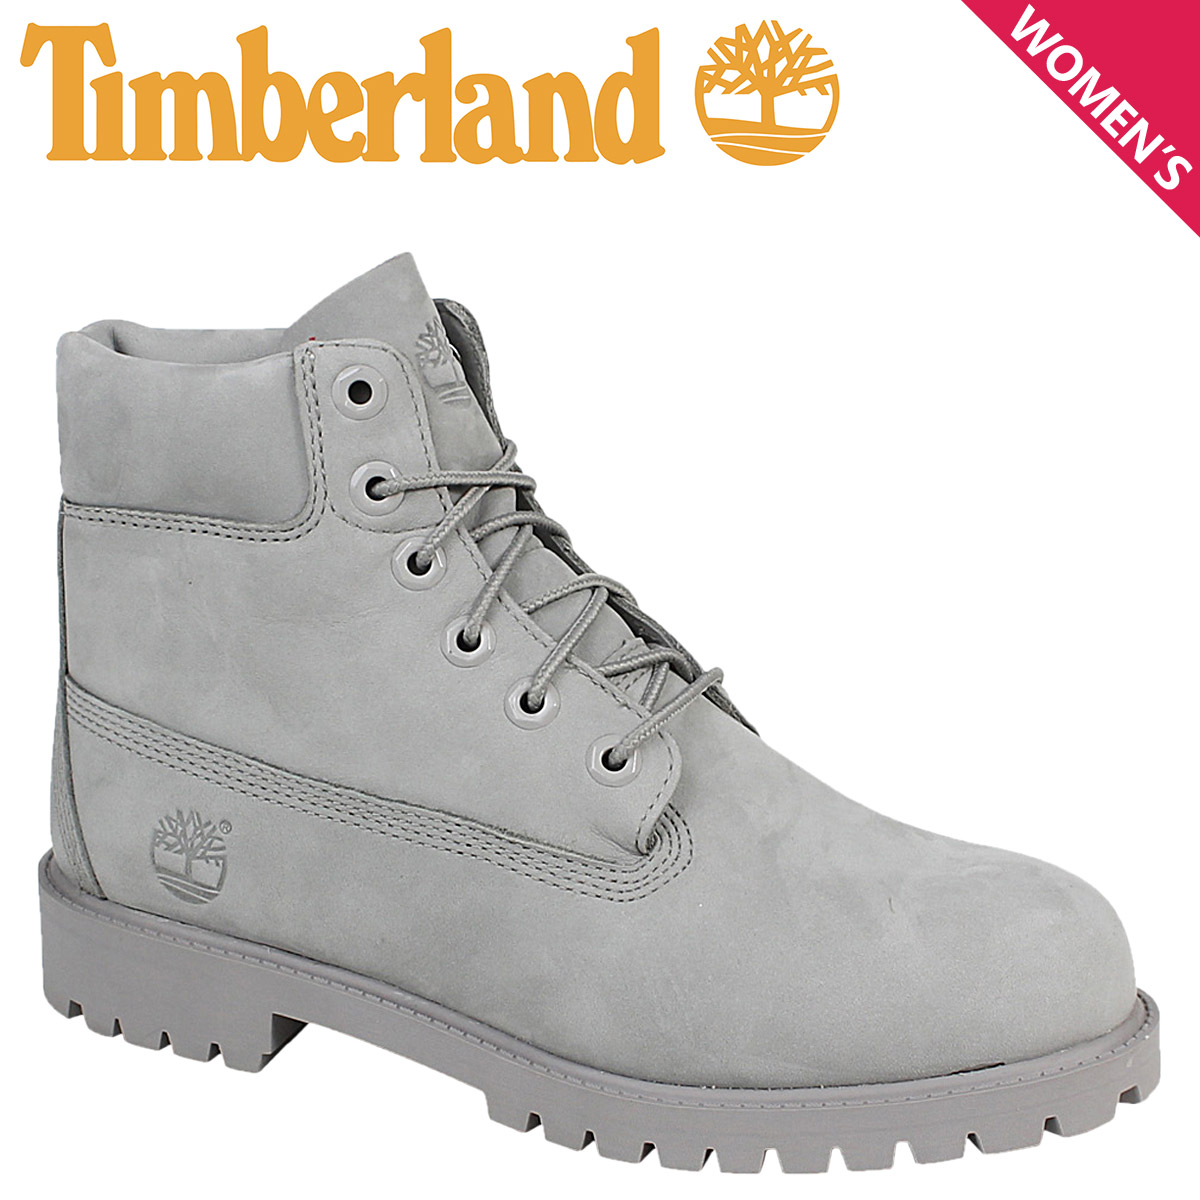 ALLSPORTS  Women s Timberland Timberland 6 INCHI 6 inch premium boots  JUNIOR 6-INCH PREMIUM WATERPROOF BOOTS A172F W wise waterproof grey  41e42c8d77a5